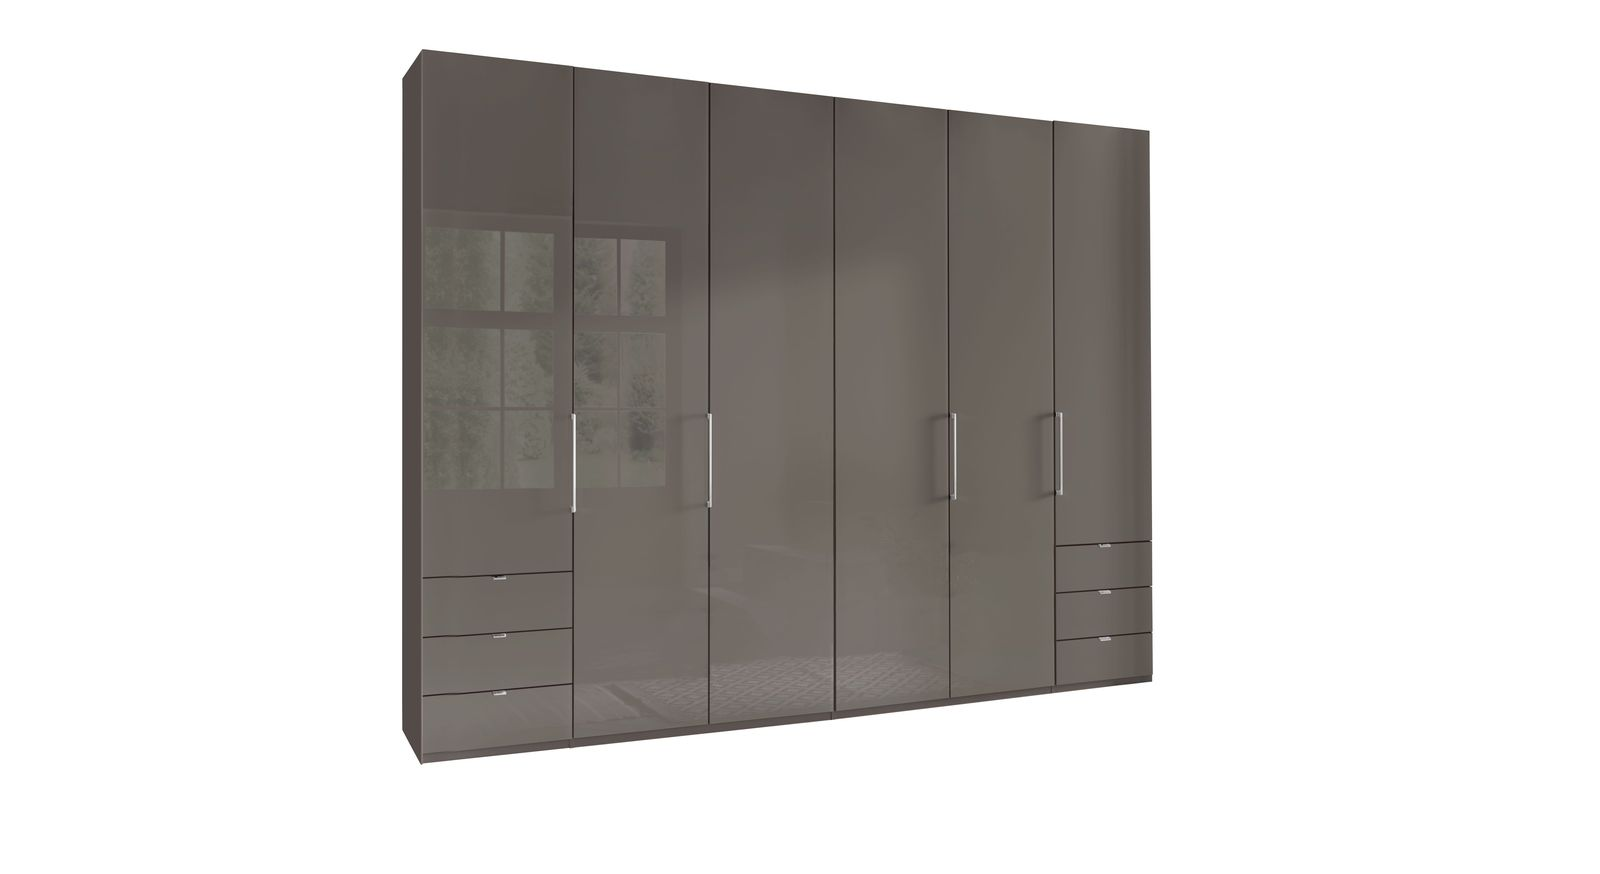 Funktions-Kleiderschrank Southville in stilvoller Optik